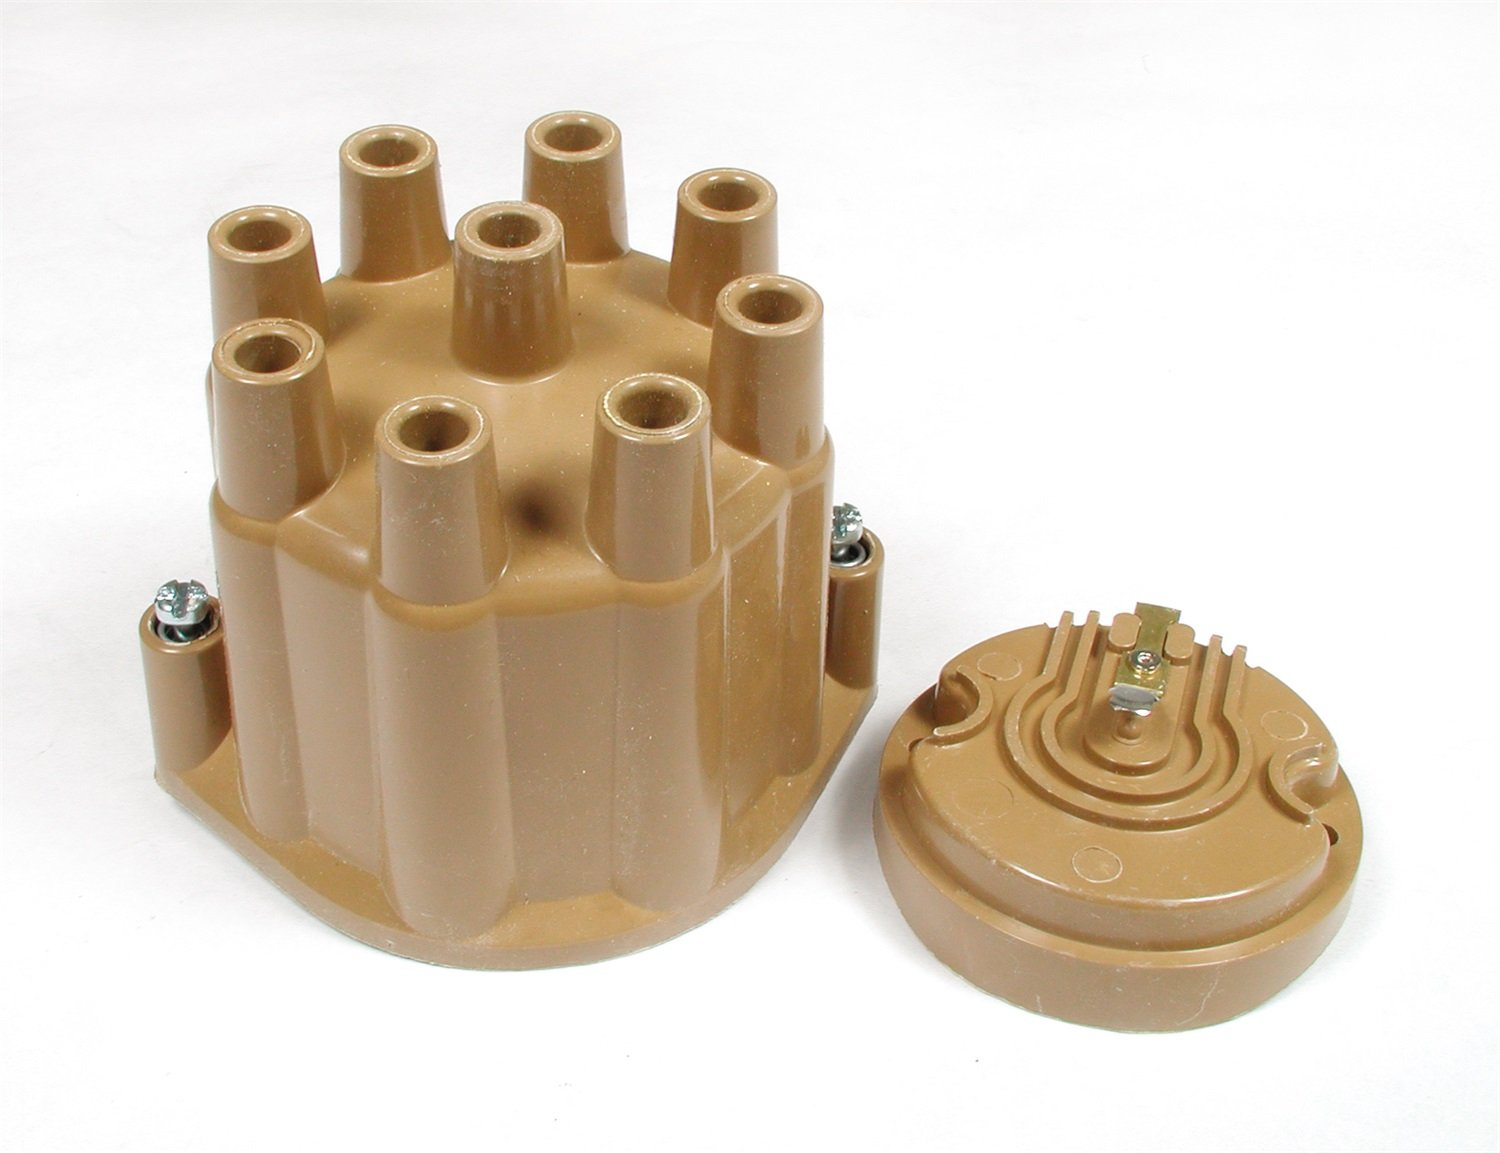 ACCEL 8120ACC Distributor Cap and Rotor Kit - Tan